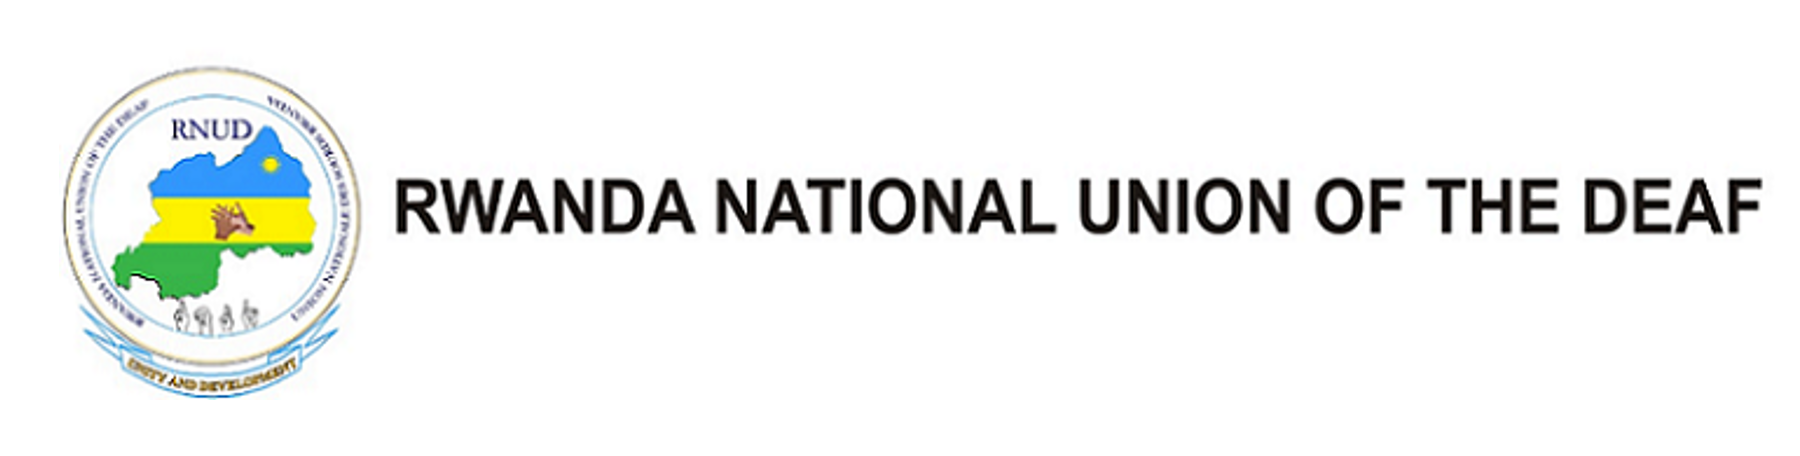 Logo for the Rwanda National Union of the Deaf: to the left of the name of the organization is a circle with a map of Rwanda inside. The map is filled with the colors of the Rwanda flag.